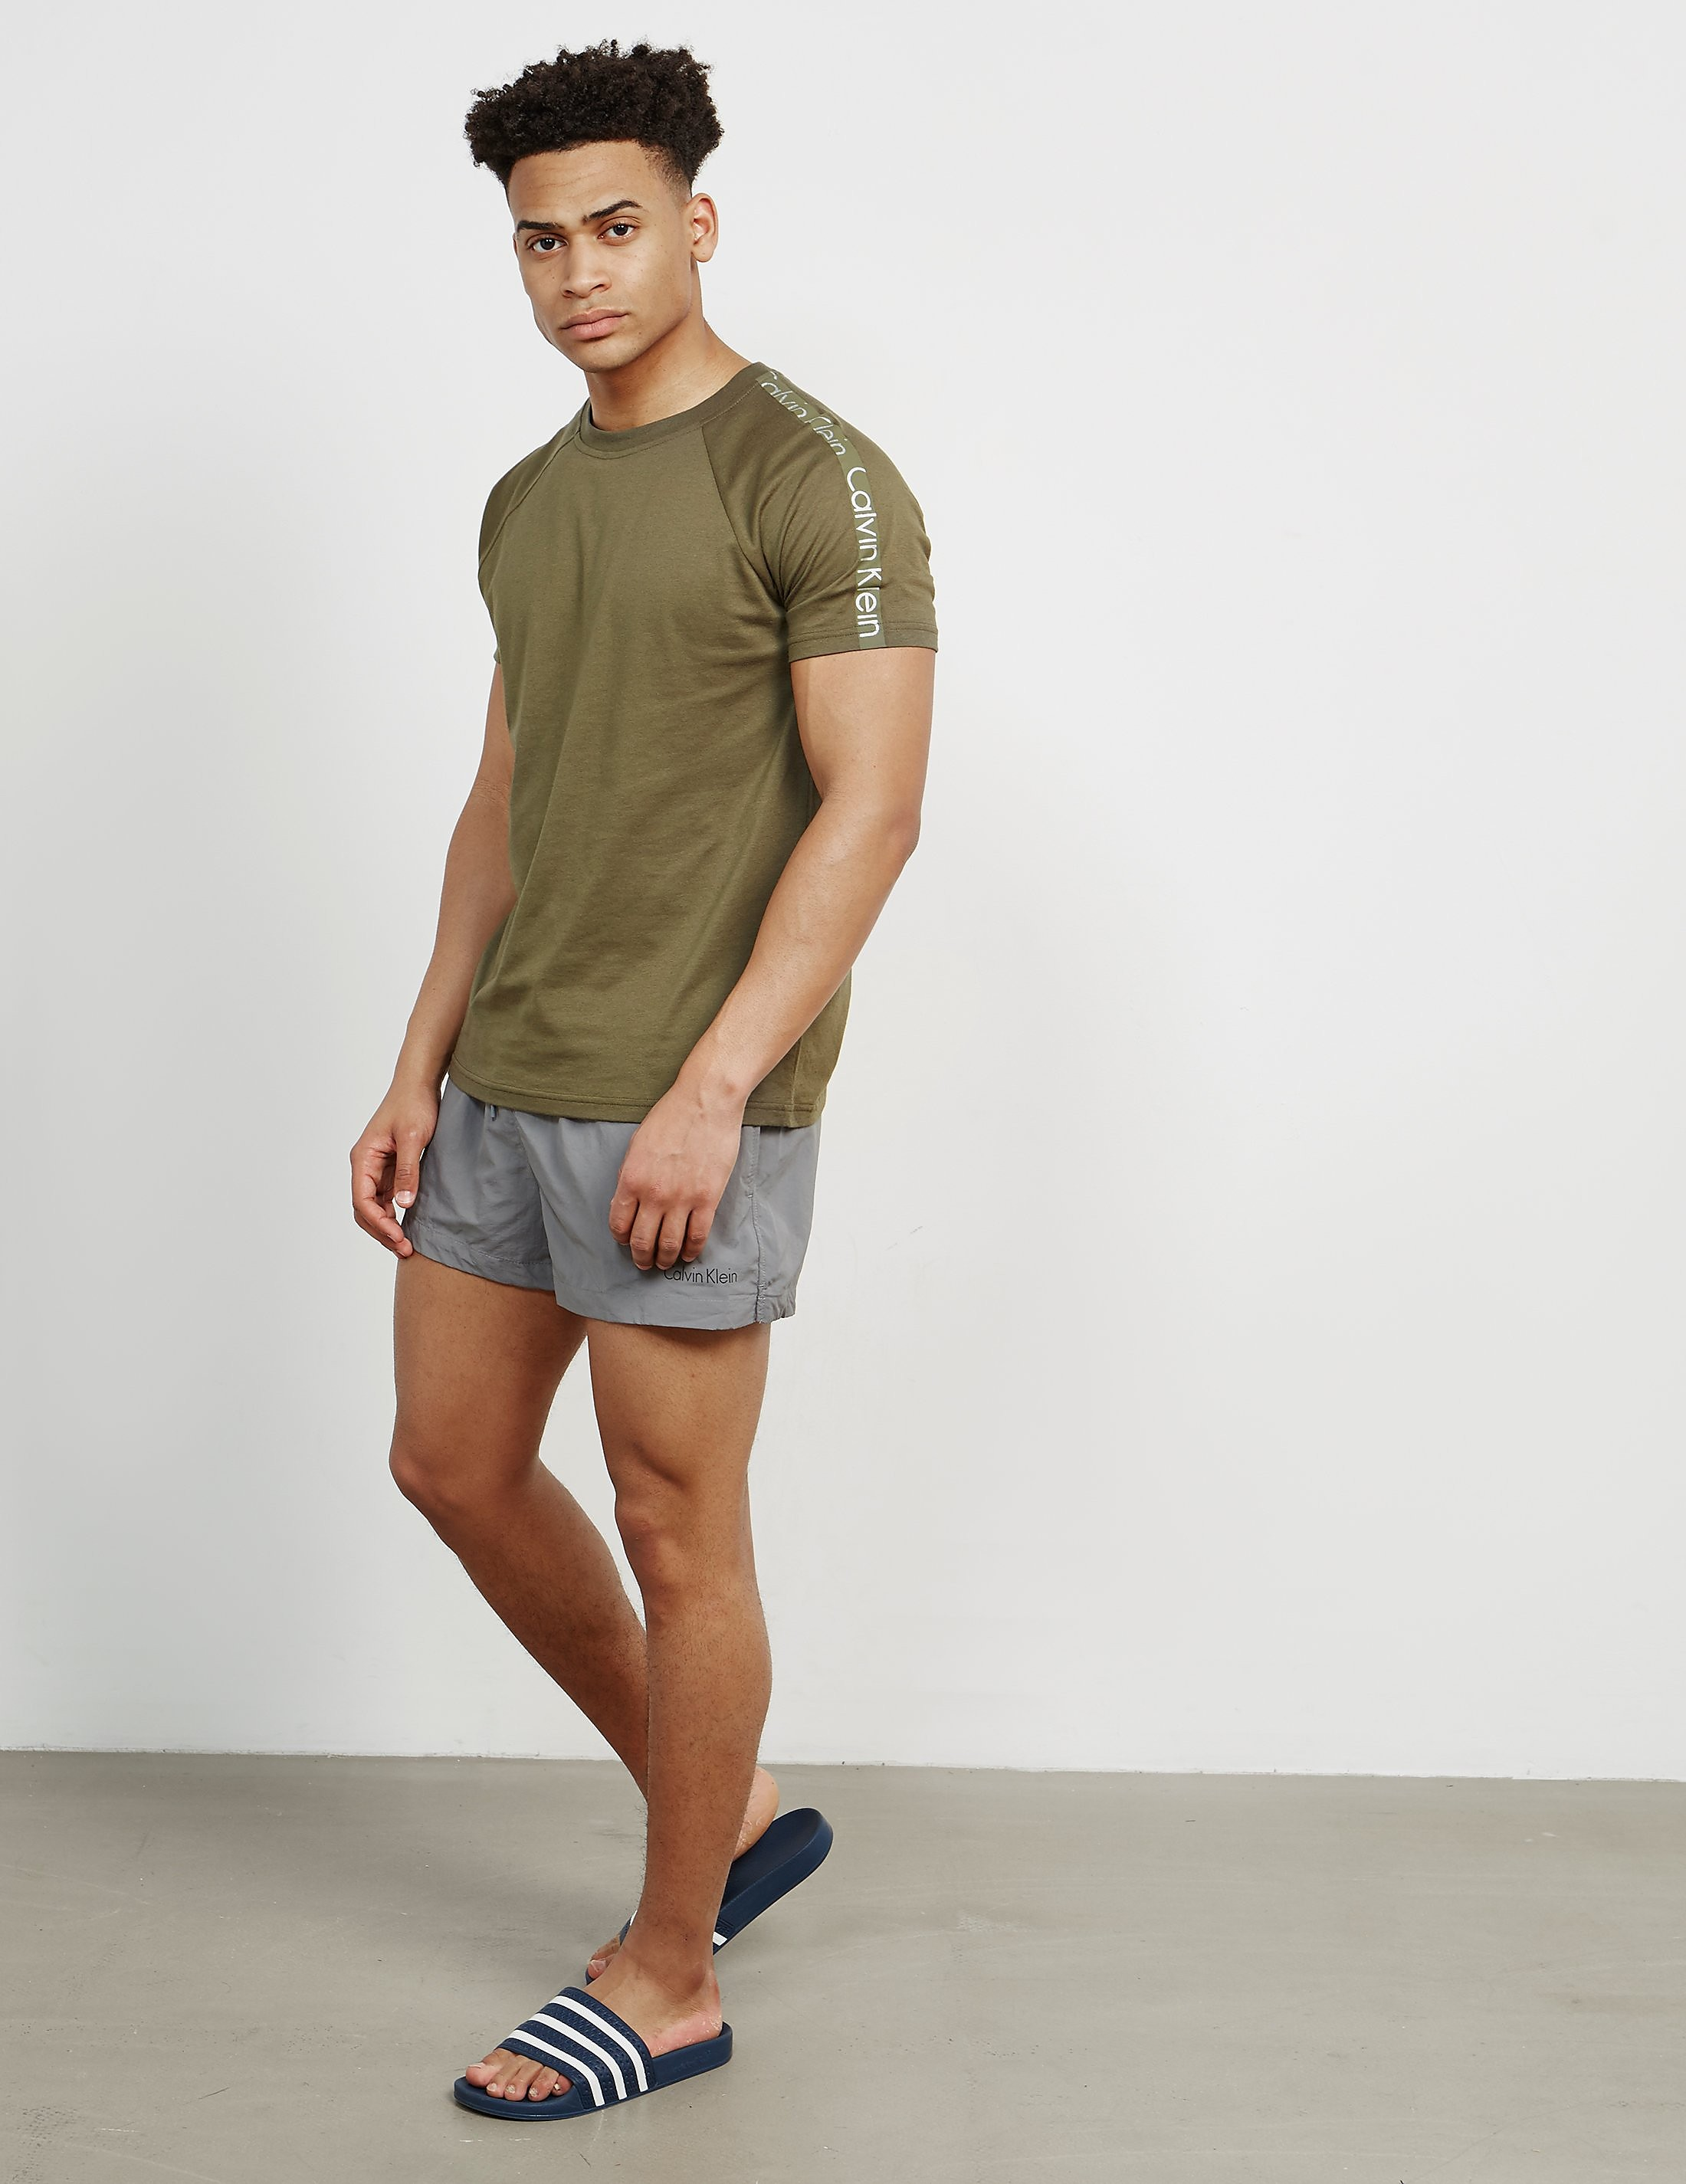 Calvin Klein Sleeve Branded Short Sleeve T-Shirt